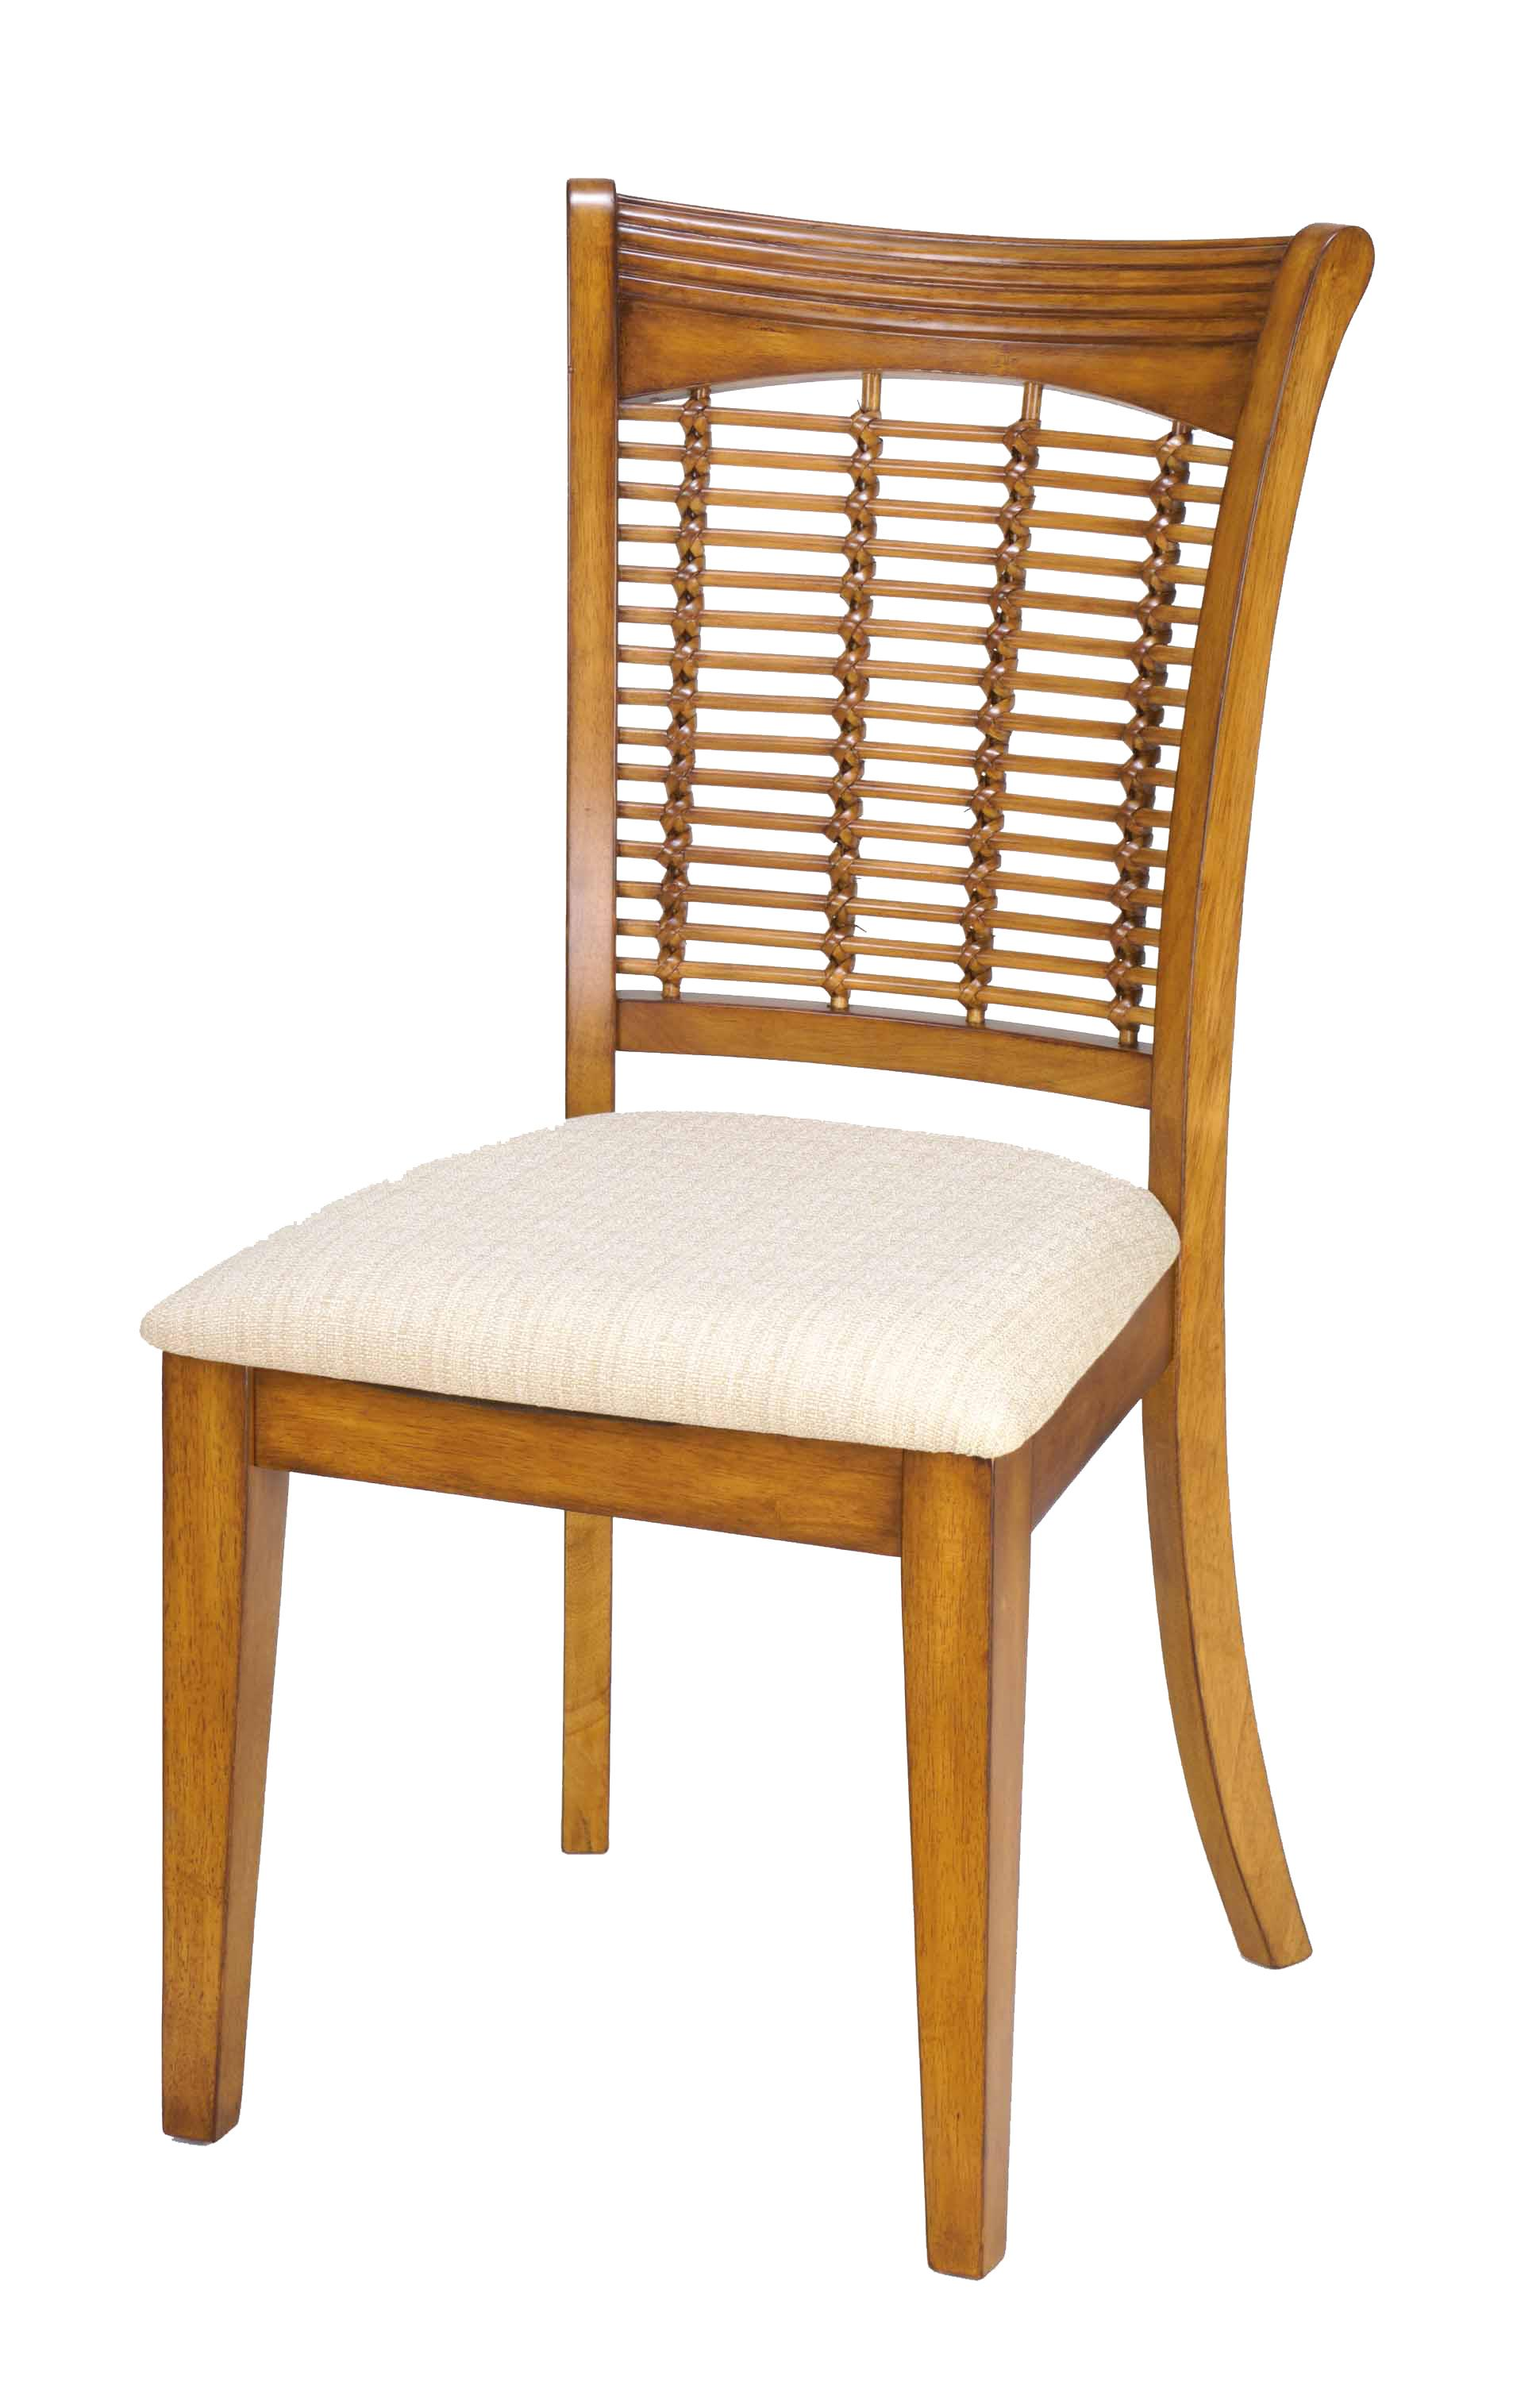 Hillsdale Bayberry and Glenmary Wicker Chair - Item Number: 4766-802